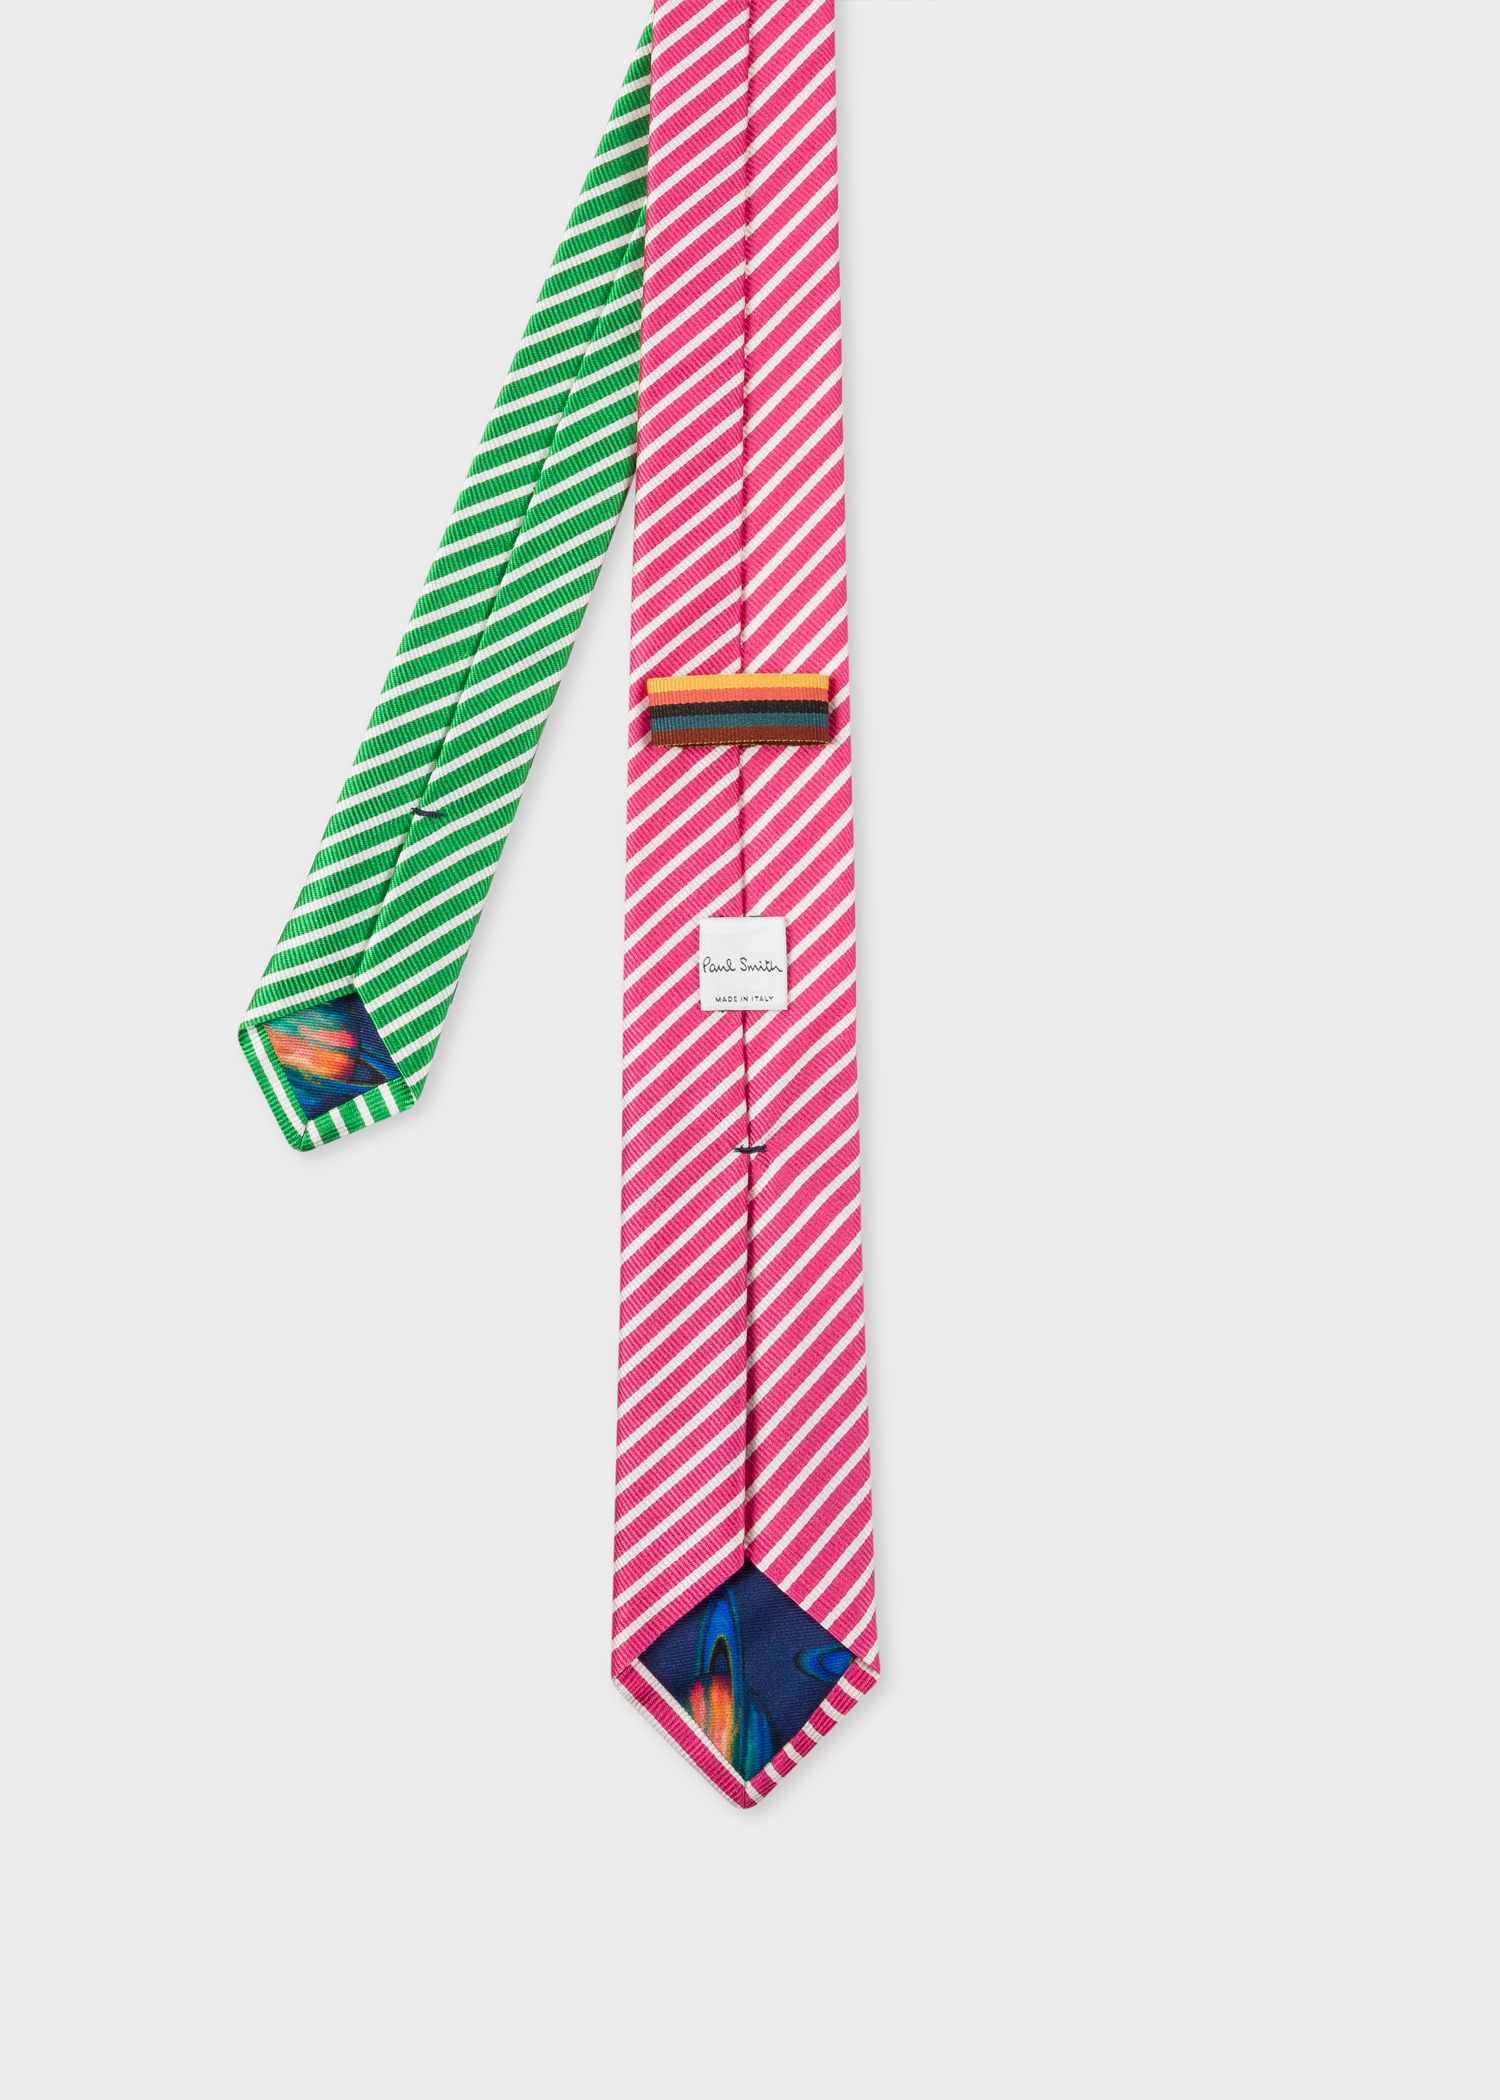 ffa7942dcb75 Back View - Men's Pink And Green Diagonal Stripe Narrow Silk Tie Paul Smith